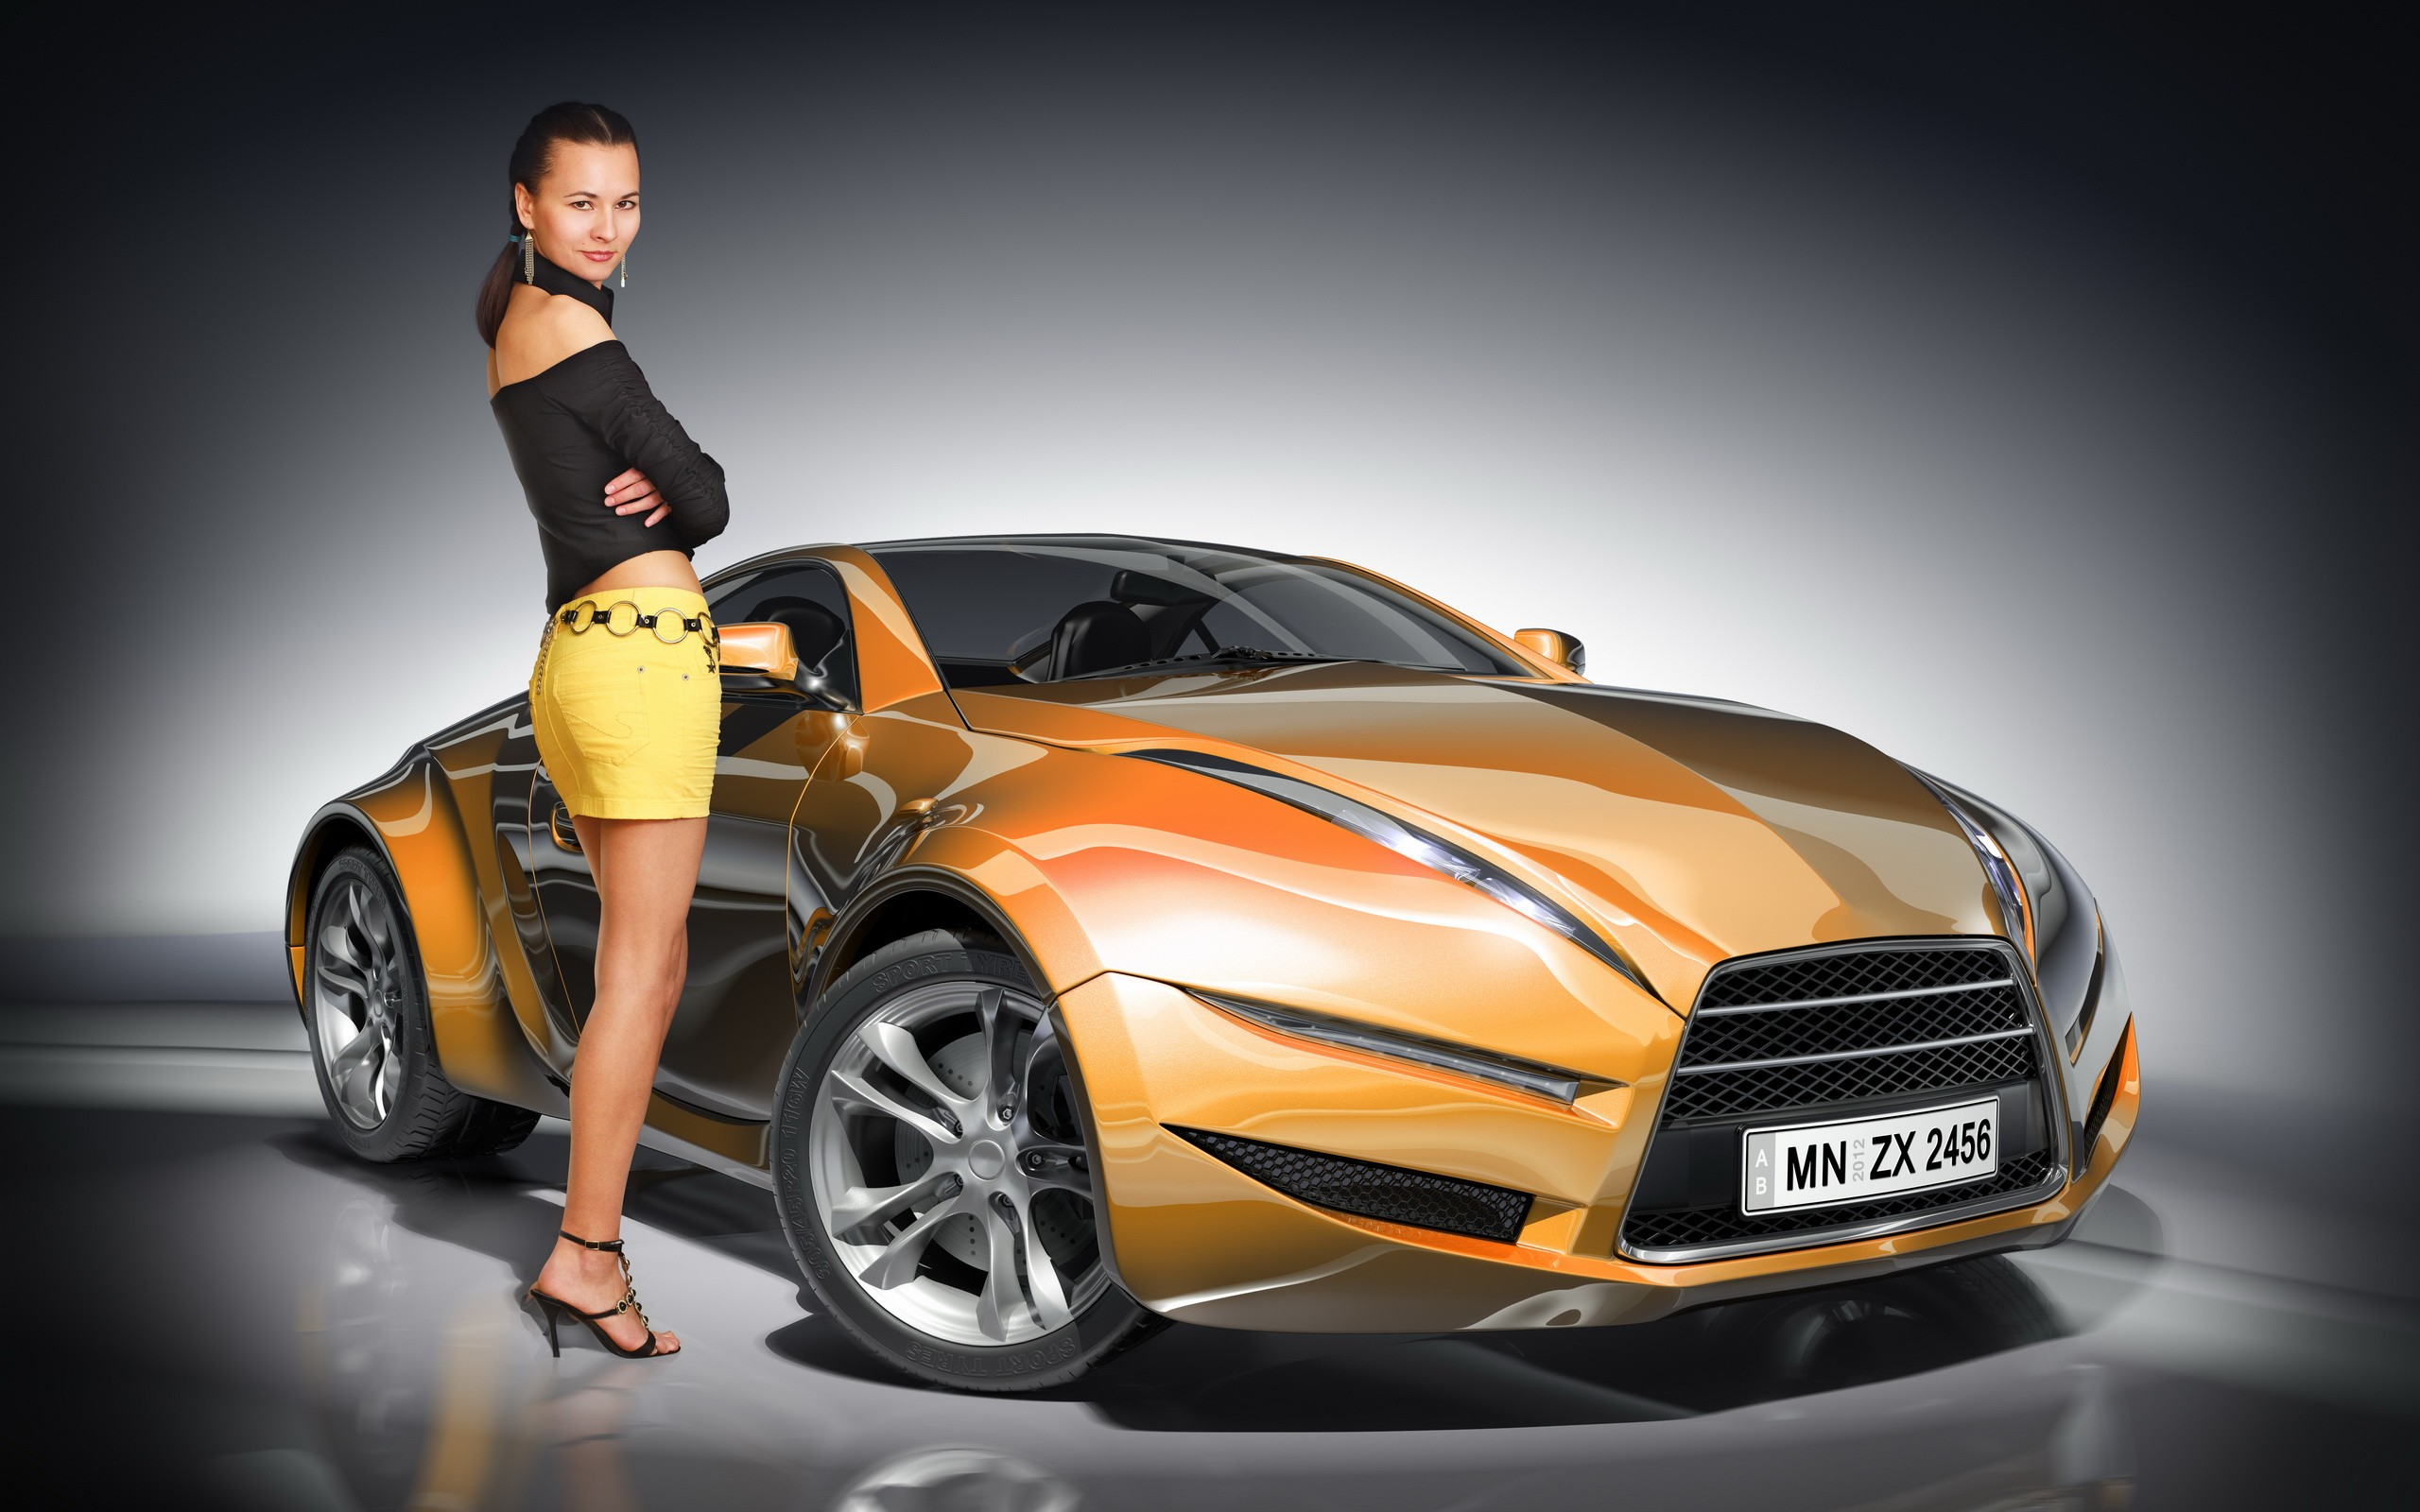 Car And Girl Wallpaper Nice Background Car Wallpapers 2560x1600